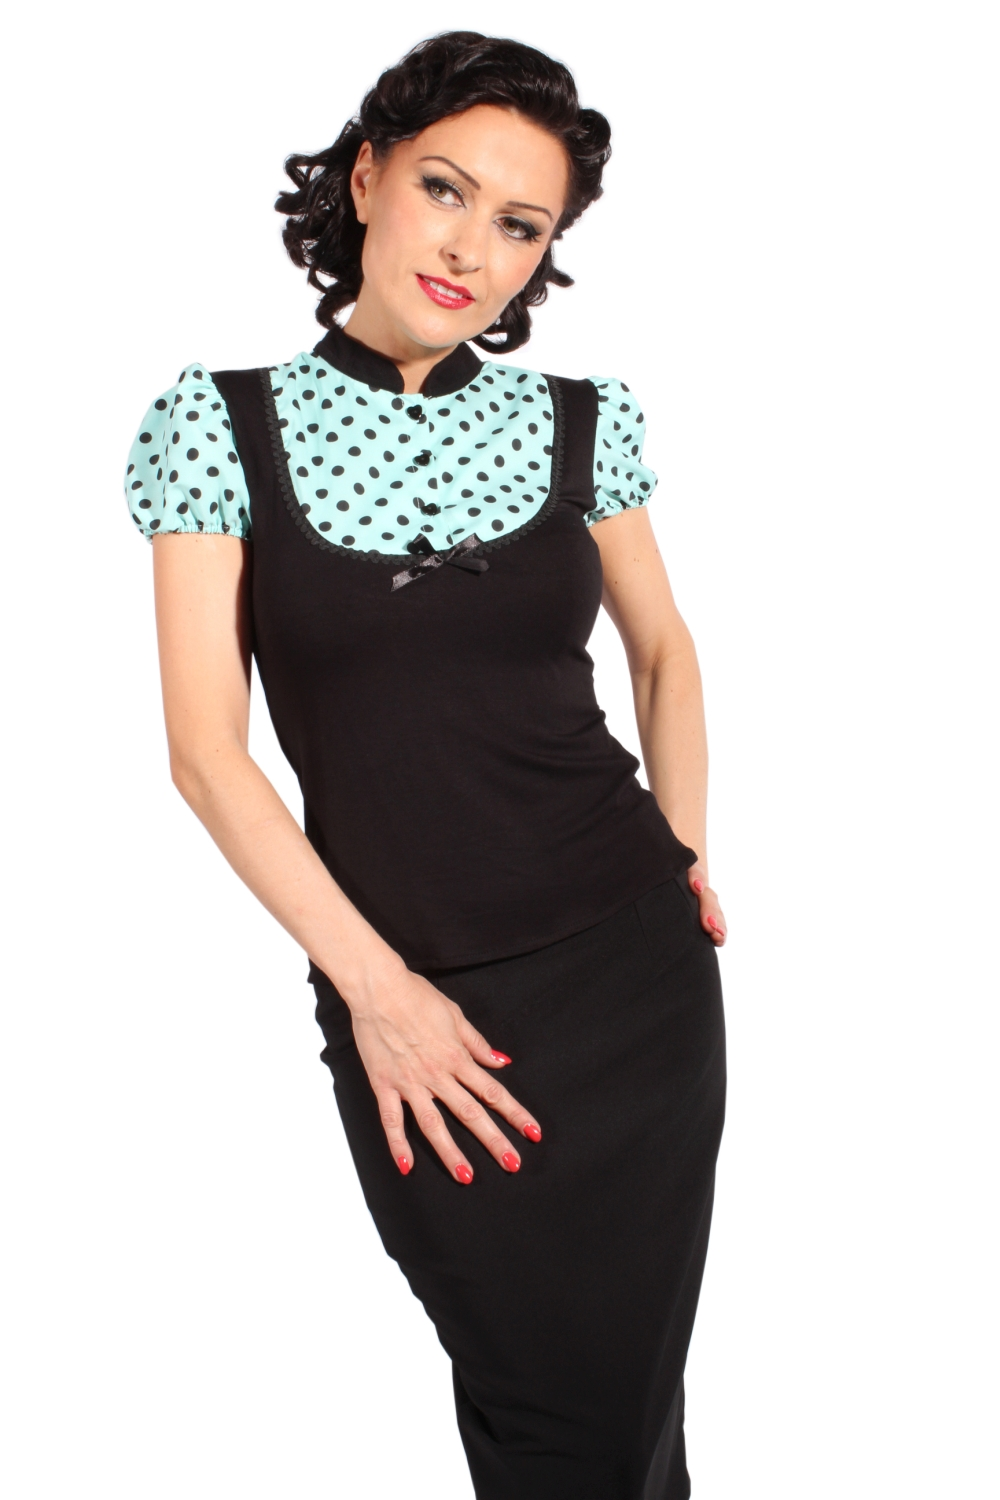 50s Puffärmel POLKA DOTS pin up Rockabilly retro Bluse T-Shirt mint